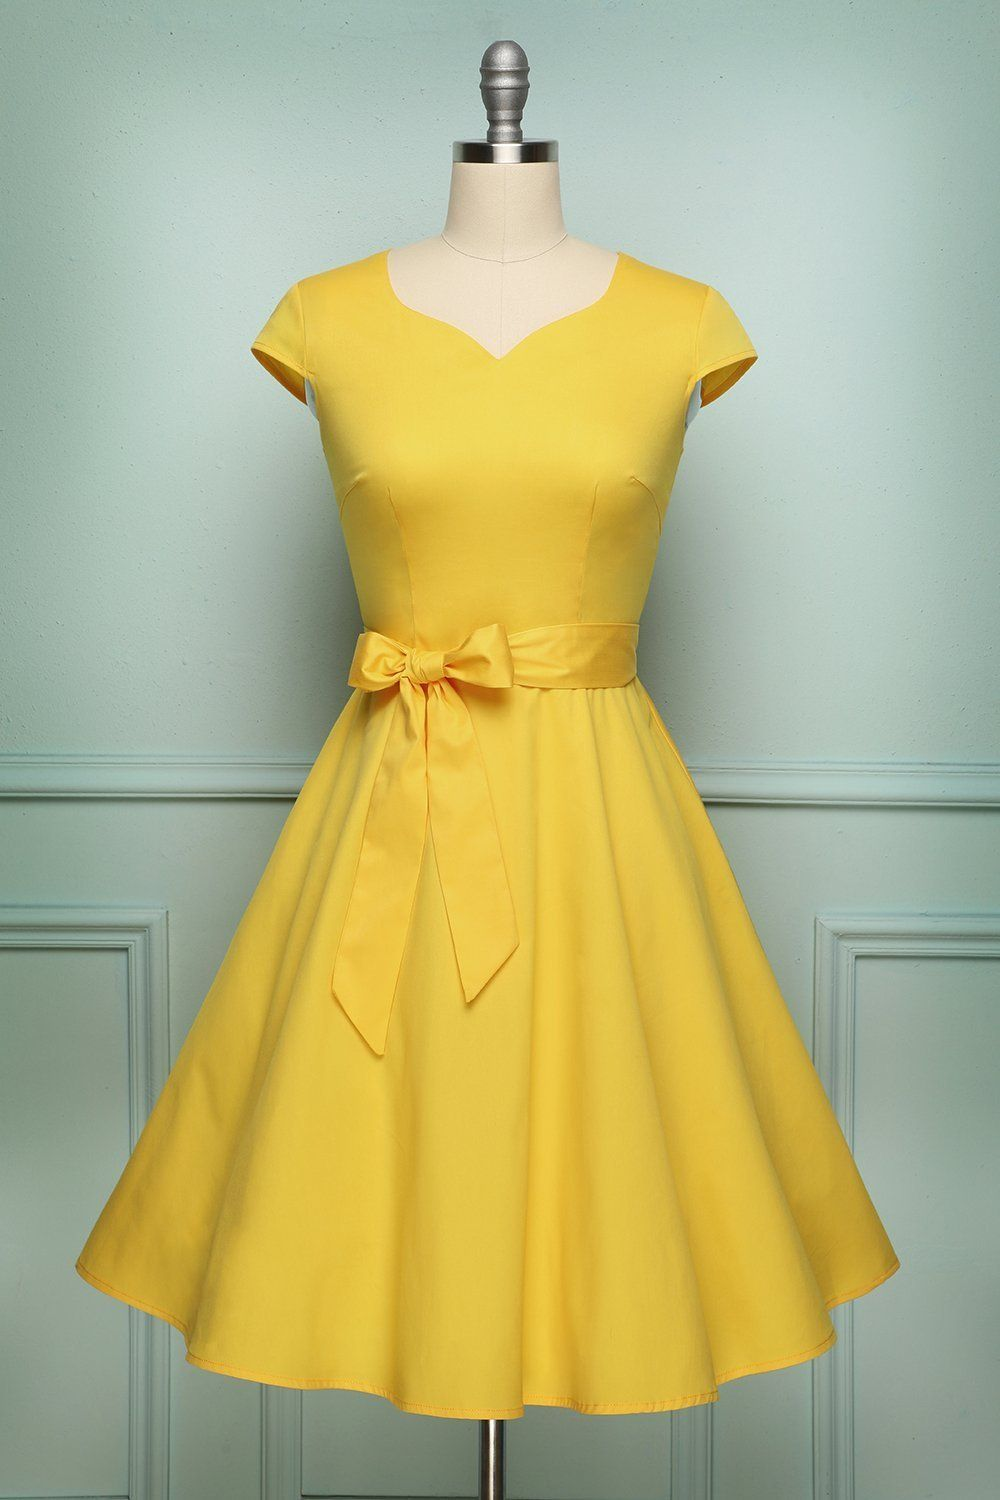 Solid Vintage 1950s Dress Yellow Vintage Dress Yellow Swing Dress Party Dresses With Sleeves [ 1500 x 1000 Pixel ]